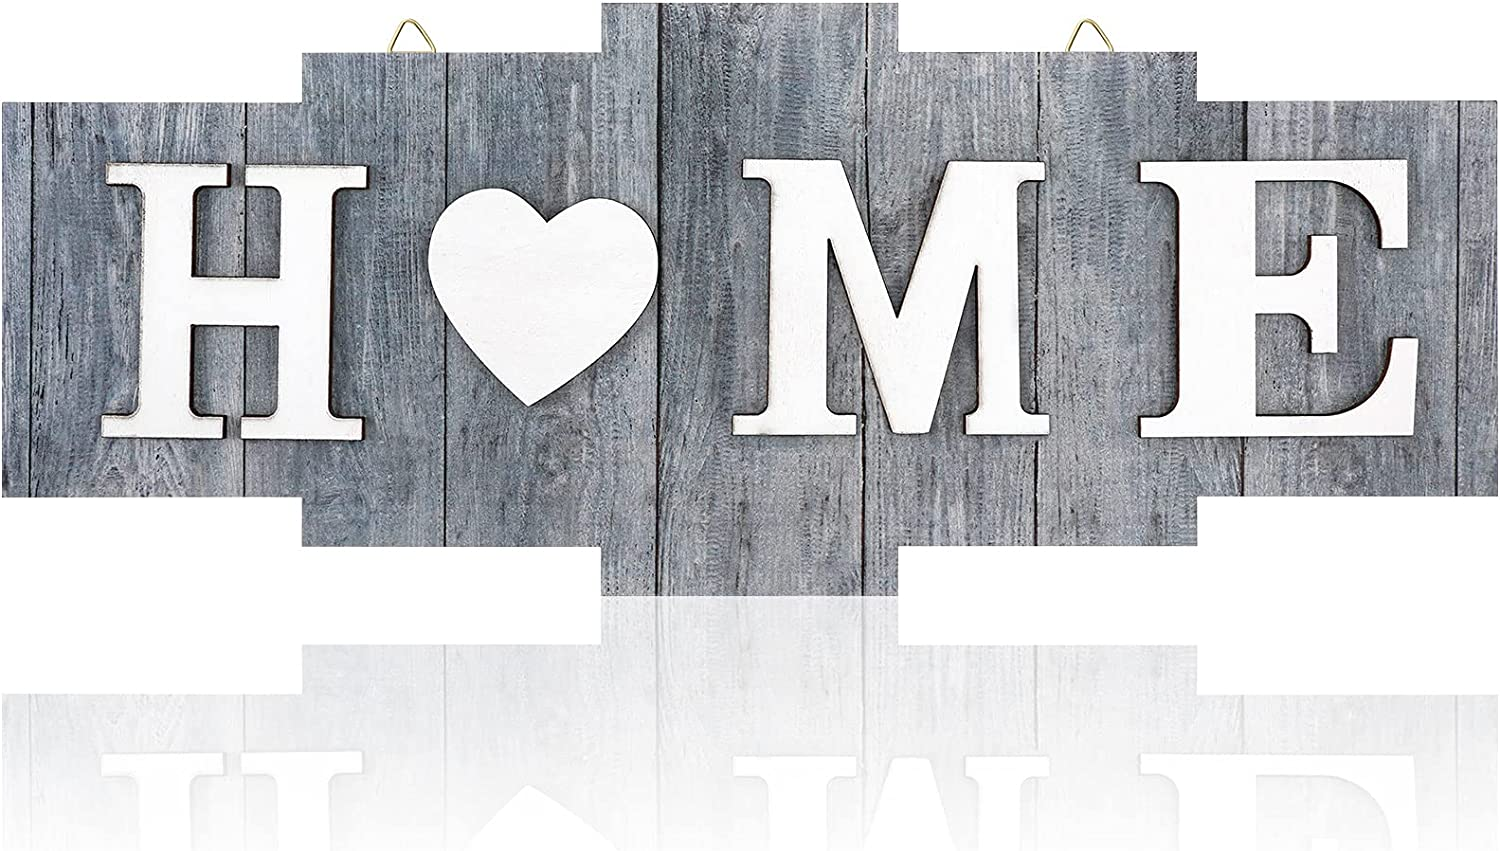 Home Signs for Home Decor, Wood Home Sign, Home Heart Rustic Wall Decor, Sweet Farmhouse Wooden Wall Sign Decoration Wood Letters Ornament for Bedroom, Living Room, Wedding Decor (Retro Color)